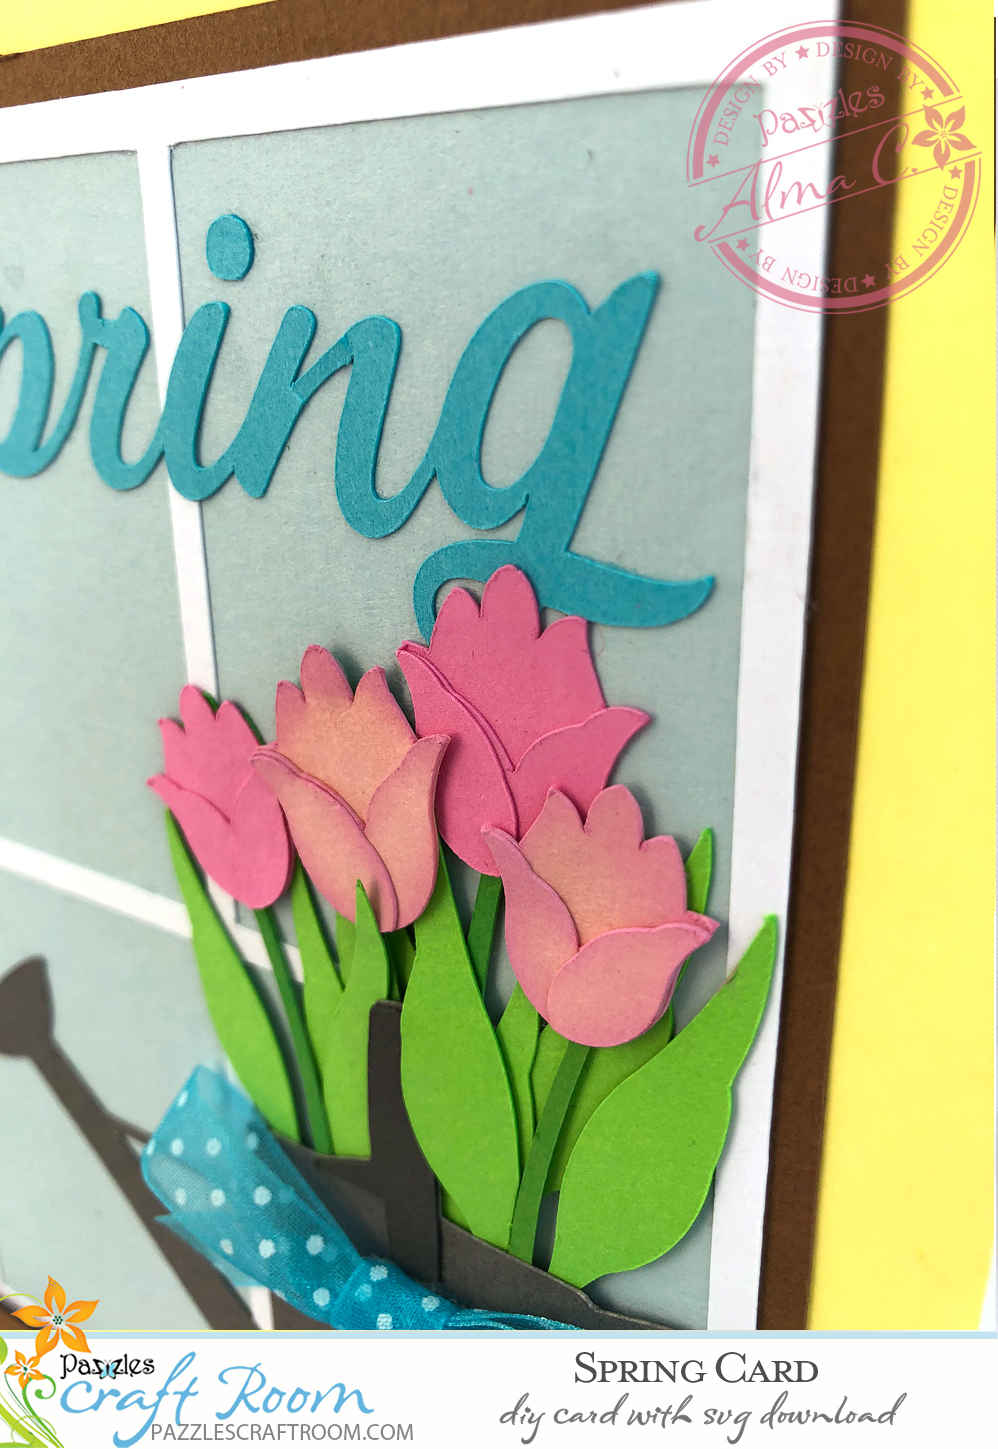 Pazzles DIY Spring Card with instant SVG download. Compatible with all major electronic cutters including Pazzles Inspiration, Cricut, and Silhouette Cameo. Design by Alma Cervantes.